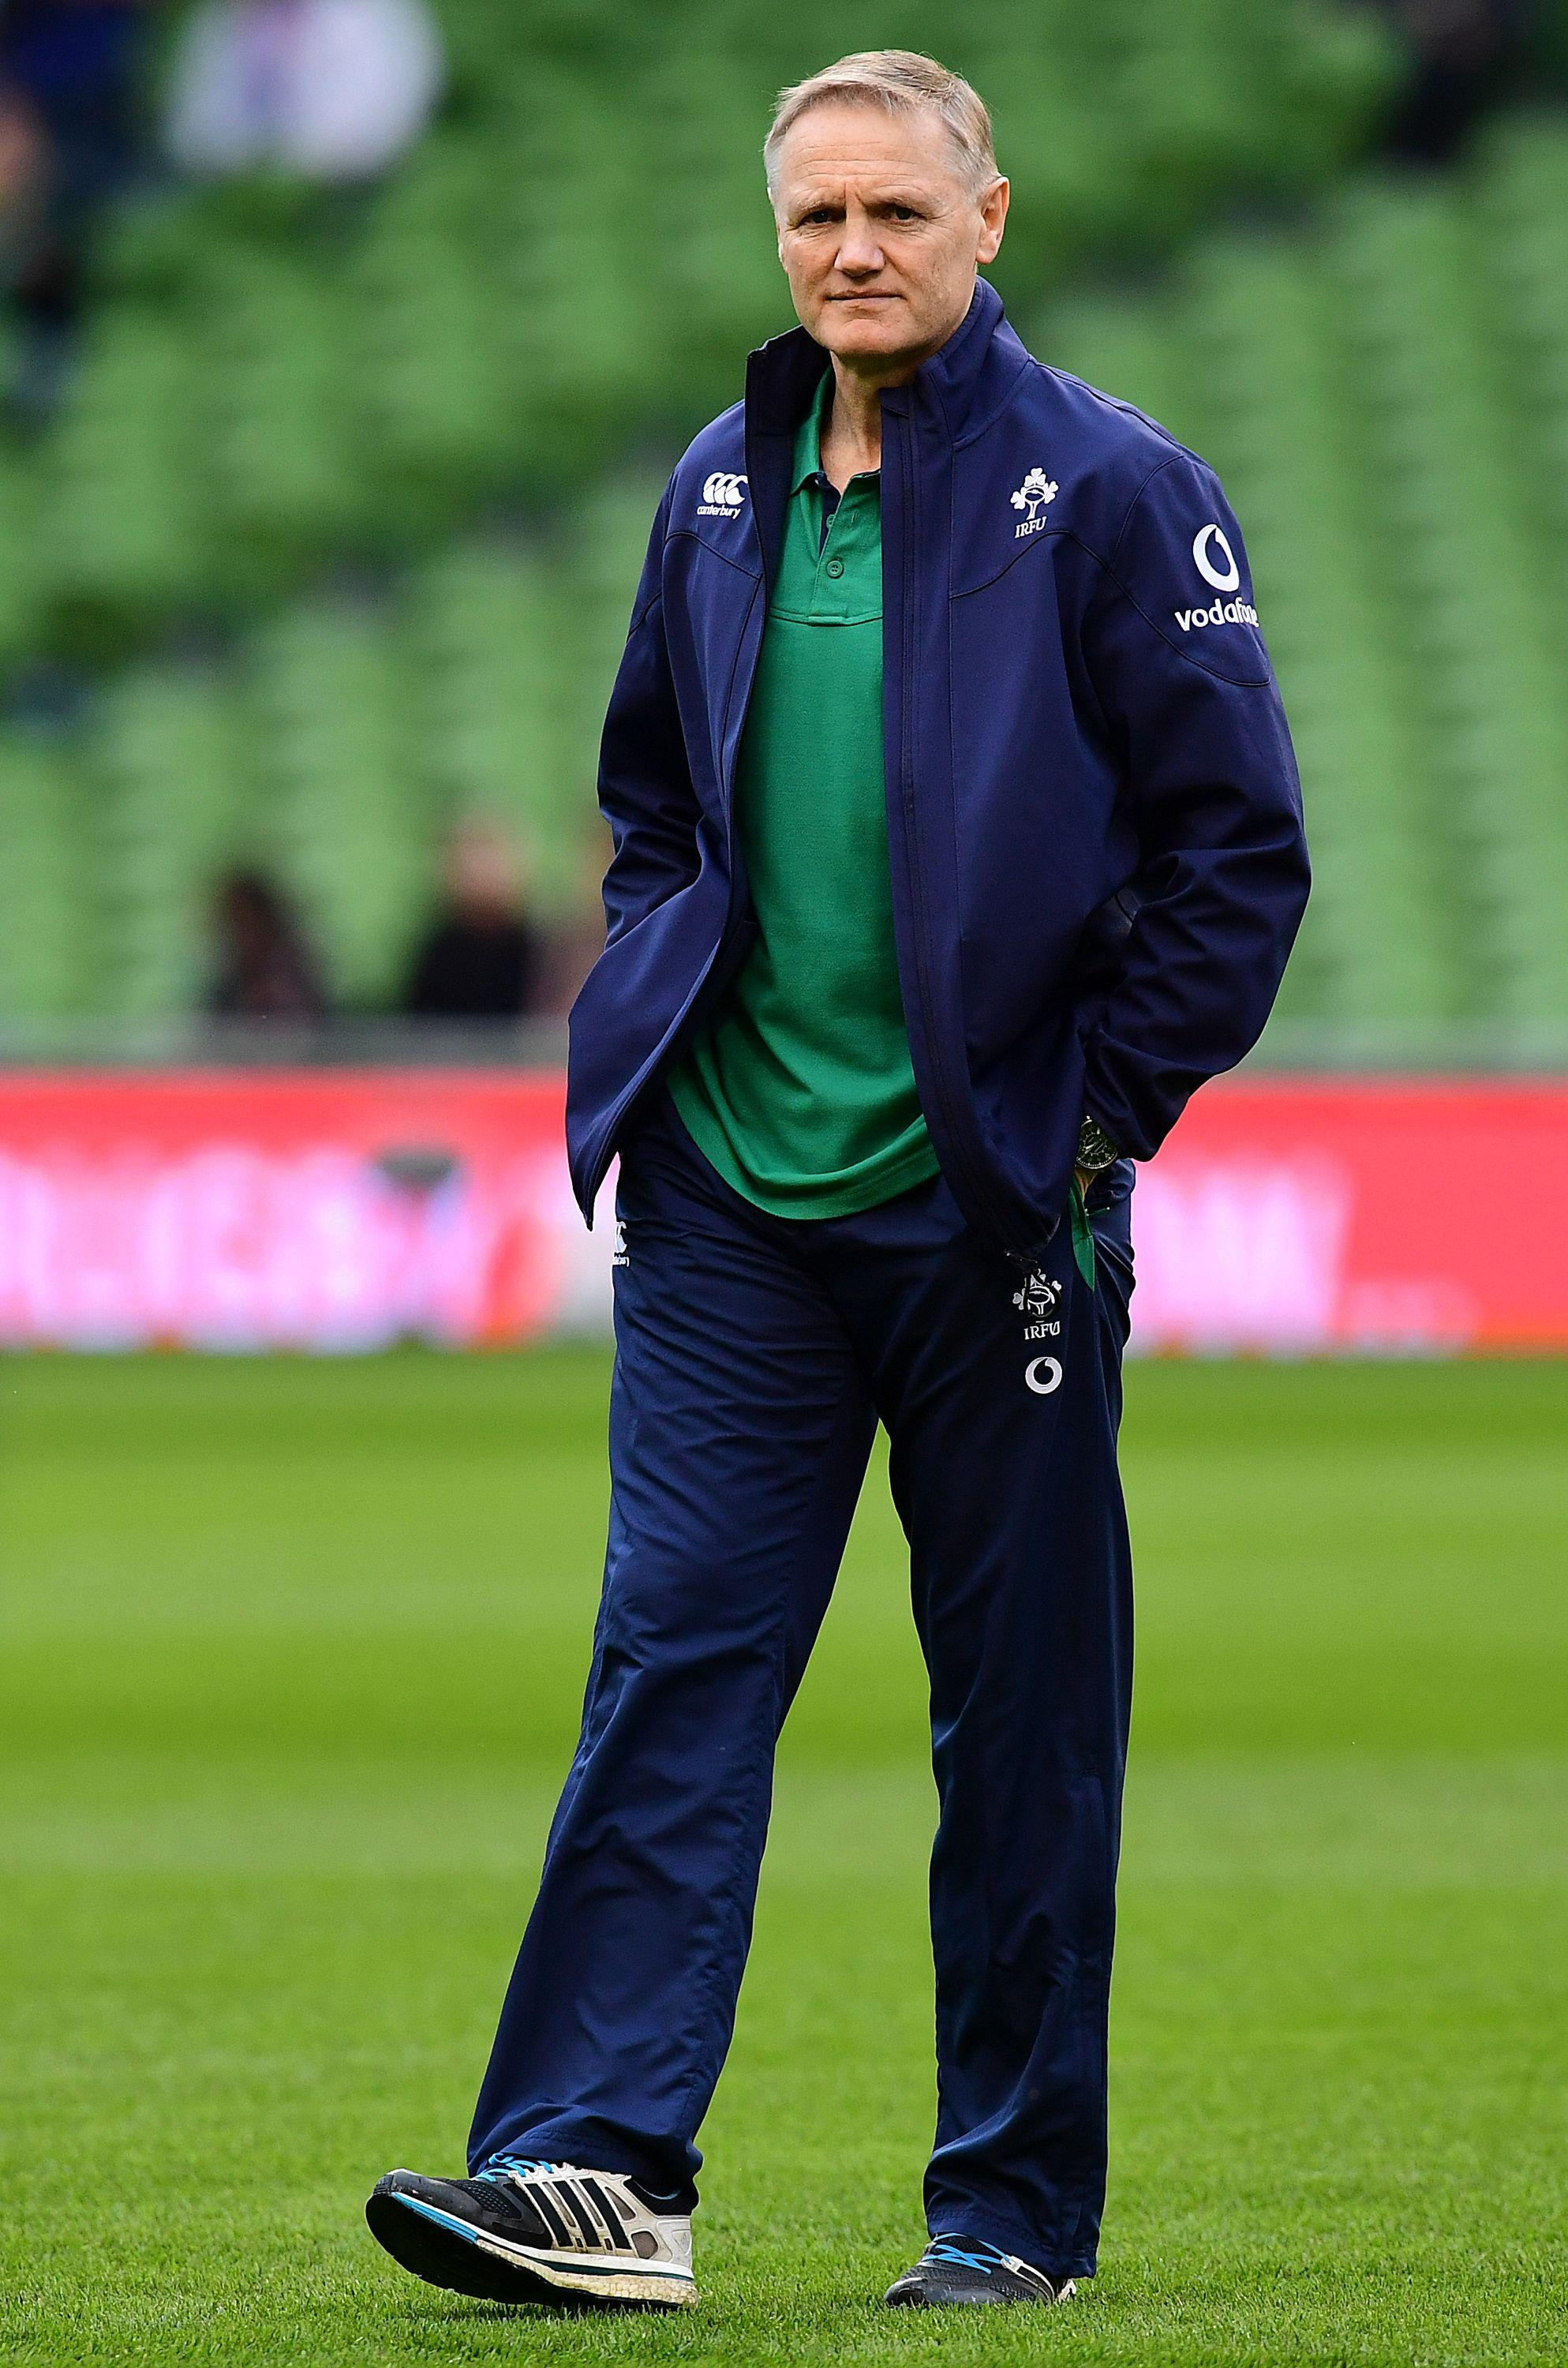 Joe Schmidt has undoubtedly taken Ireland to the next level and could prove to be a huge loss